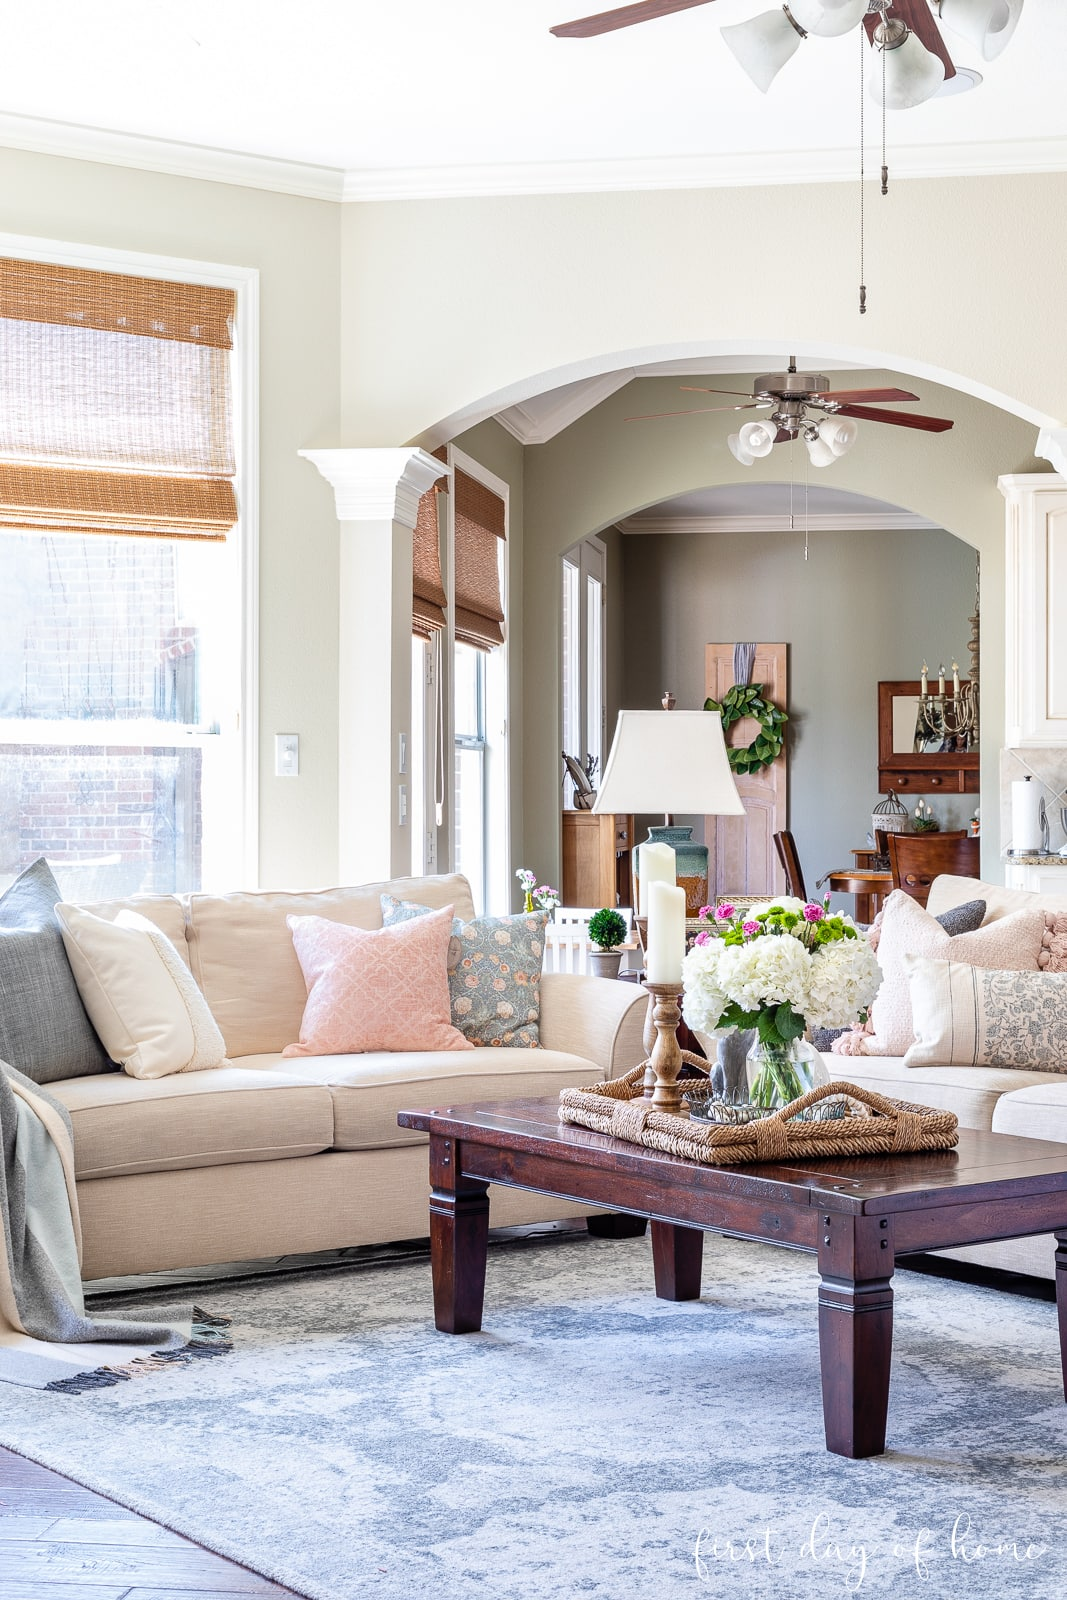 Spring coffee table accents in living room with throw pillows on sofas in background